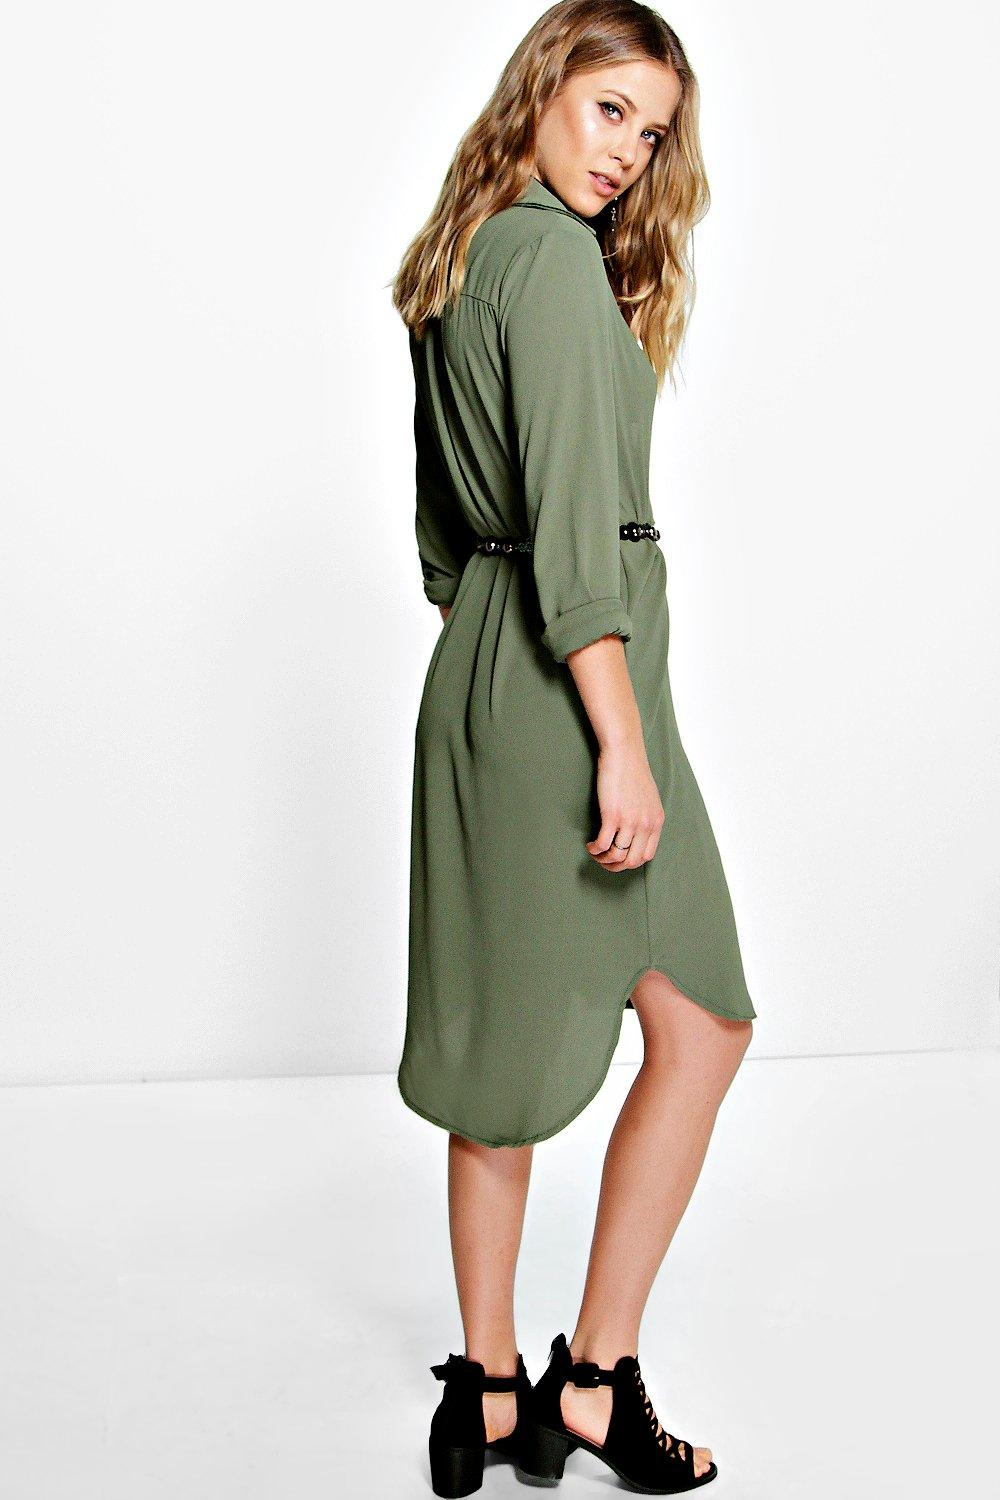 Boohoo Womens Ivone Long Line Shirt Dress  eBay